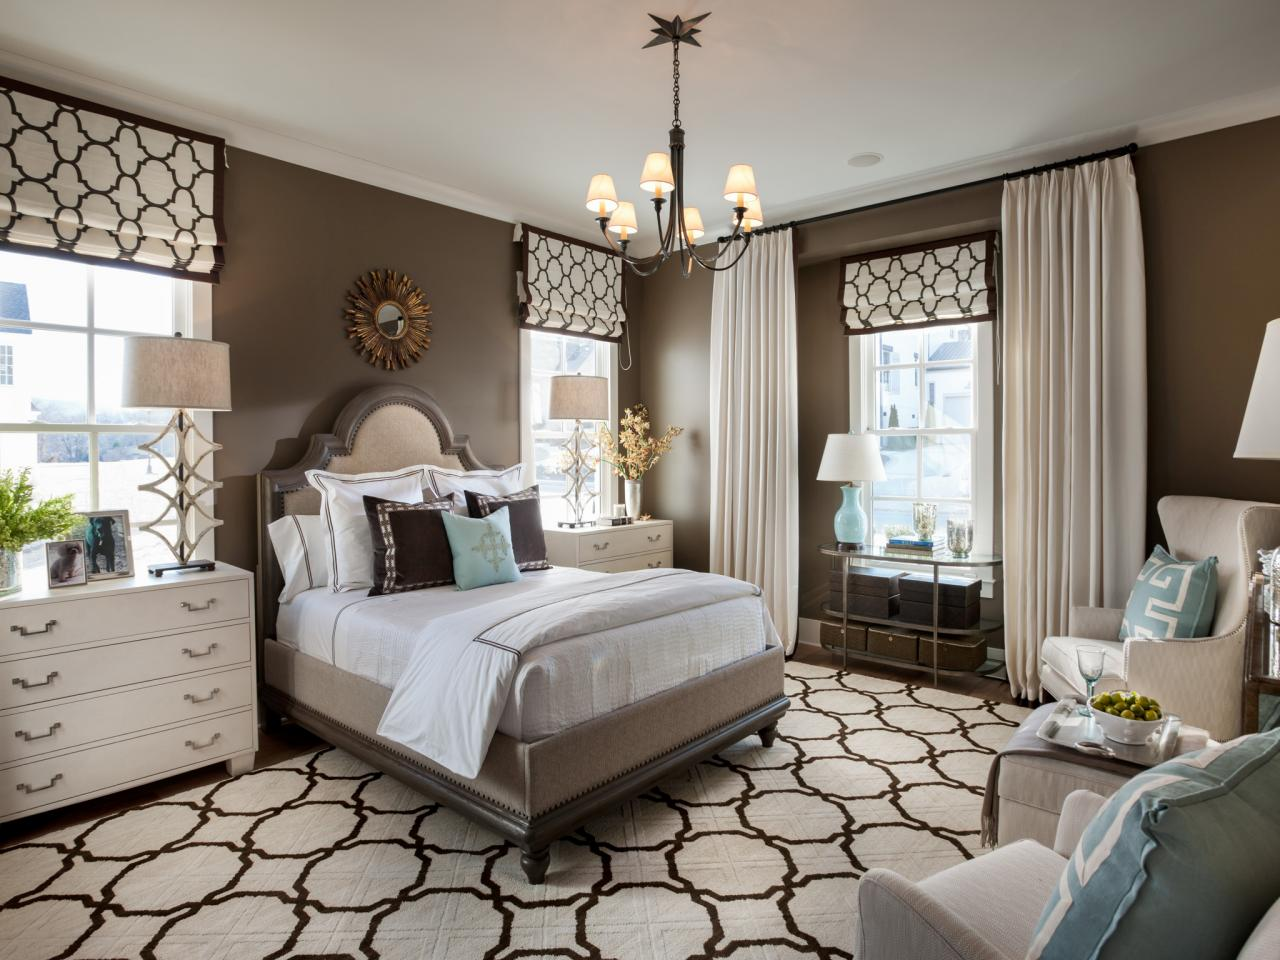 Transitional Style Bedroom in Brown with Blue